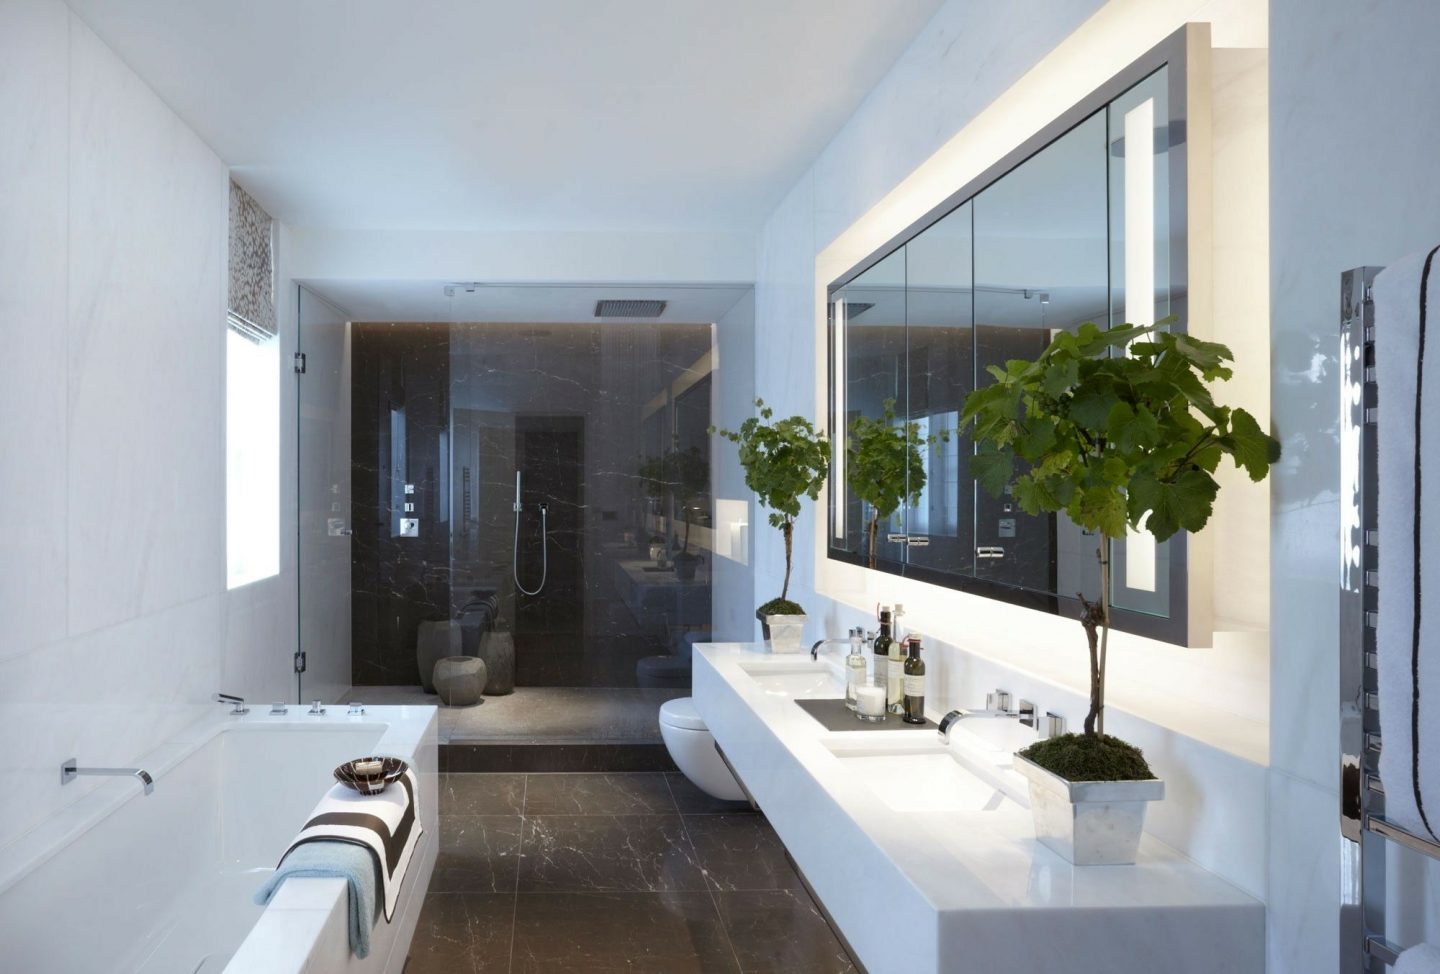 key steps to your dream bathroom, bathroom design , bathroom renovation, Luxury bathroom, hello peagreen